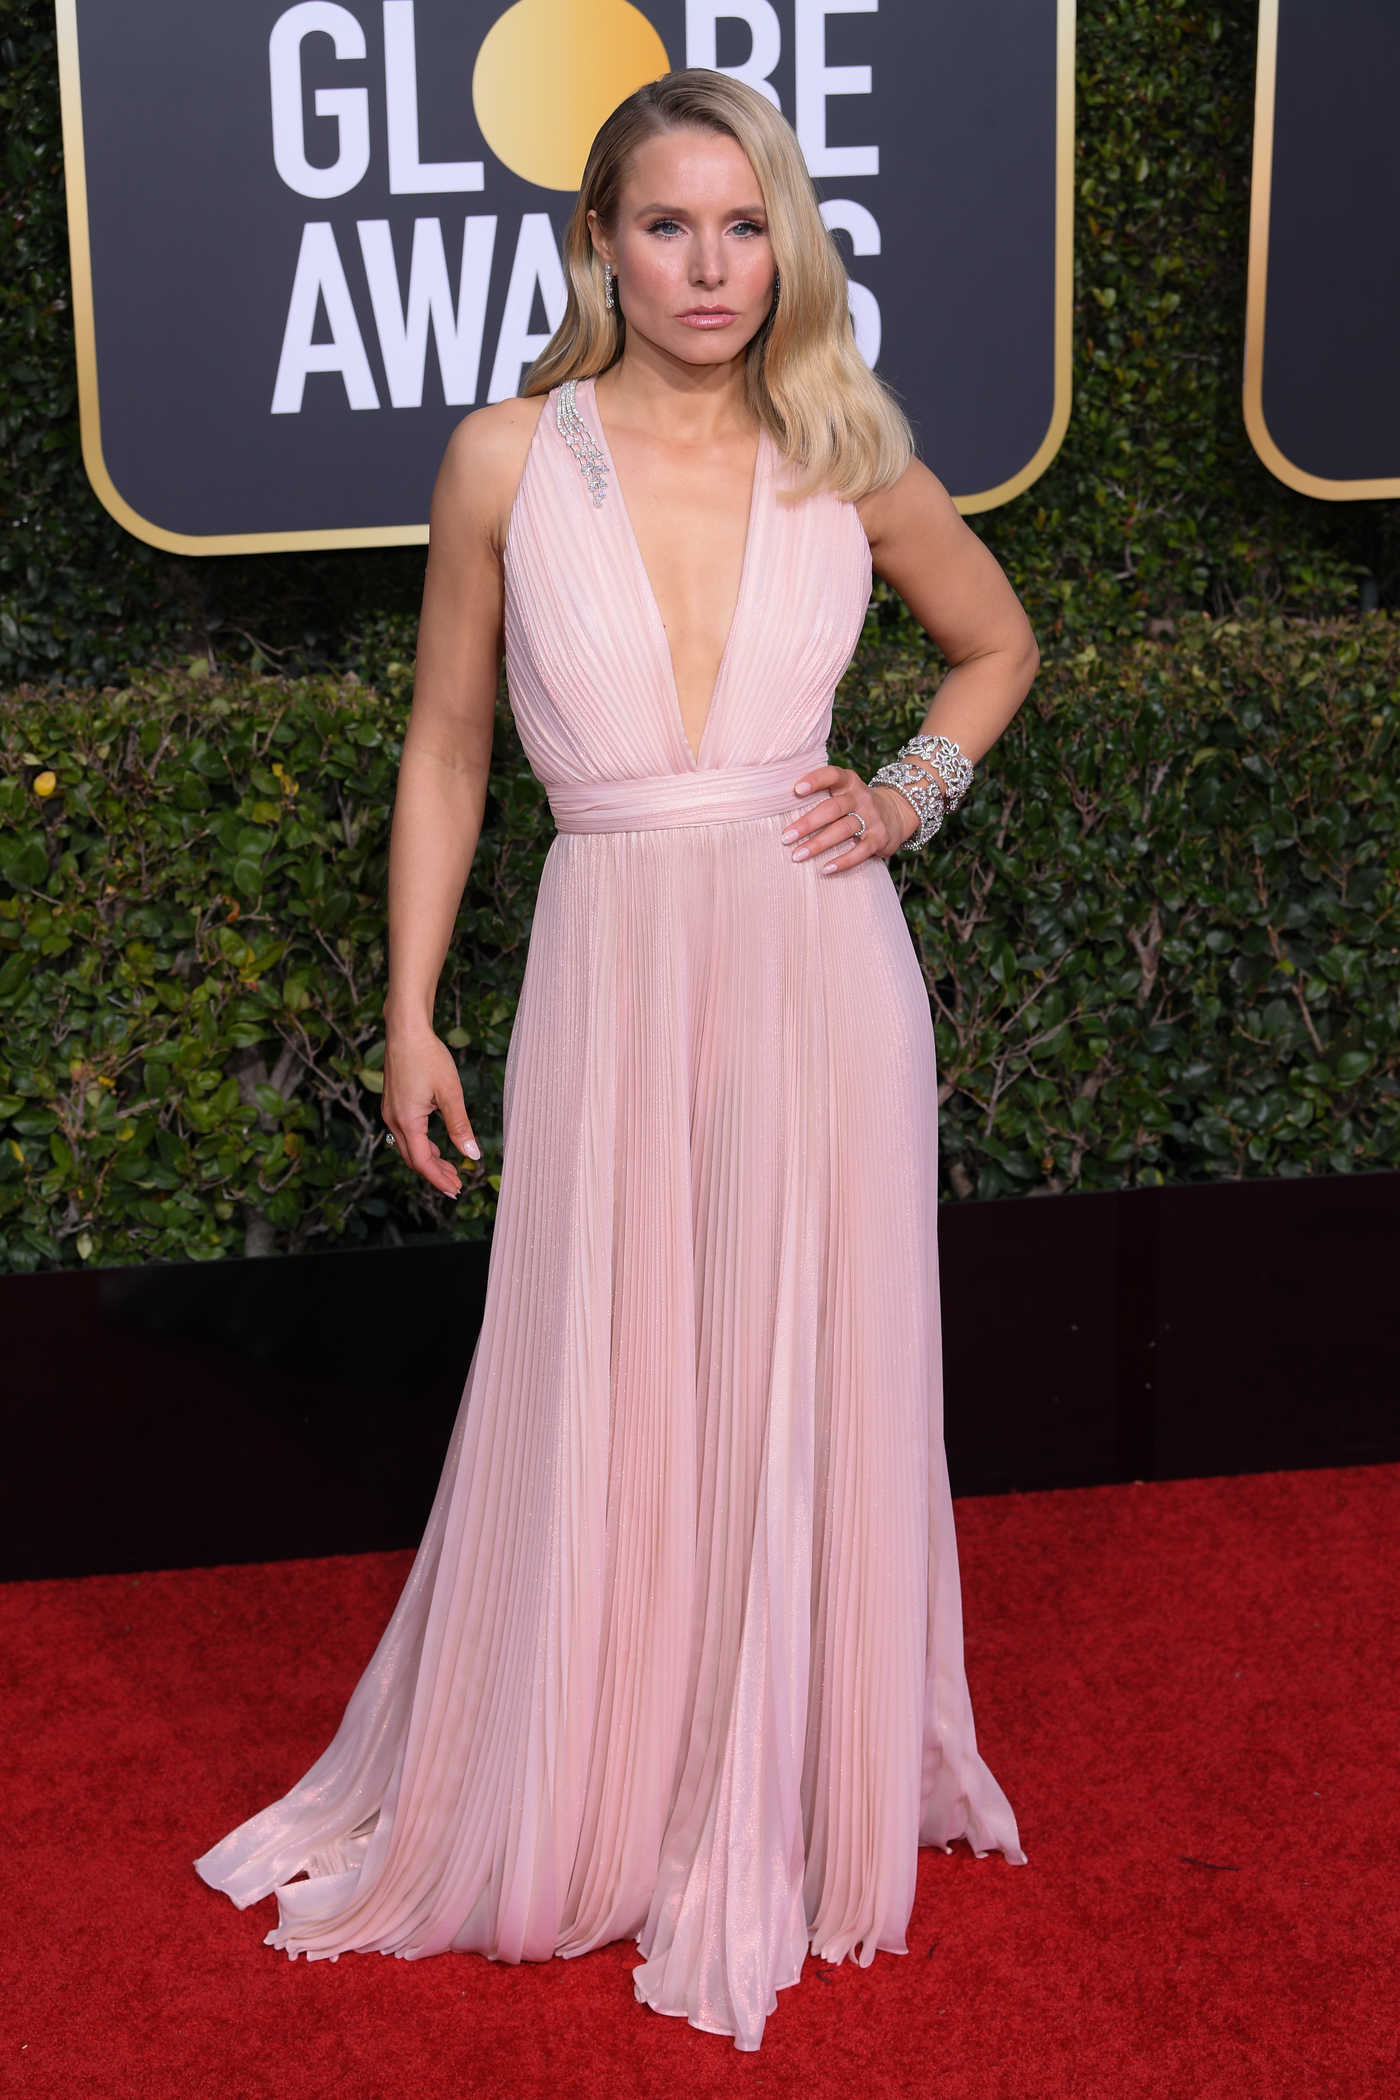 Kristen Bell Attends the 76th Annual Golden Globe Awards in Beverly Hills 01/06/2019